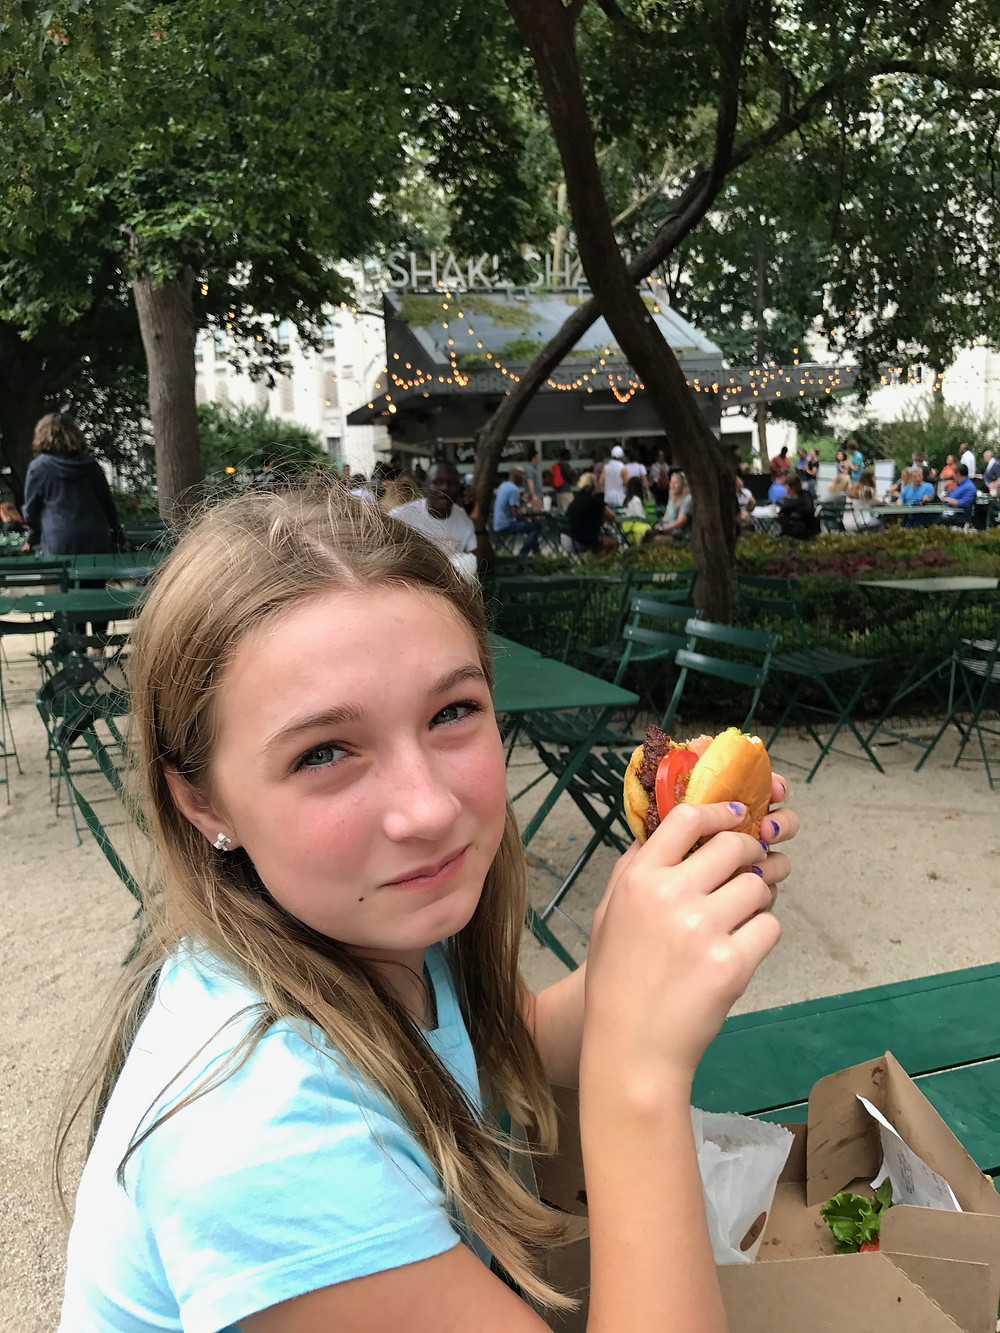 This is the original Shake Shack location in Madison Square Park. A great summer stop. There are several Shake Shacks throughout NYC. We most frequently visit the one in midtown on 8th.